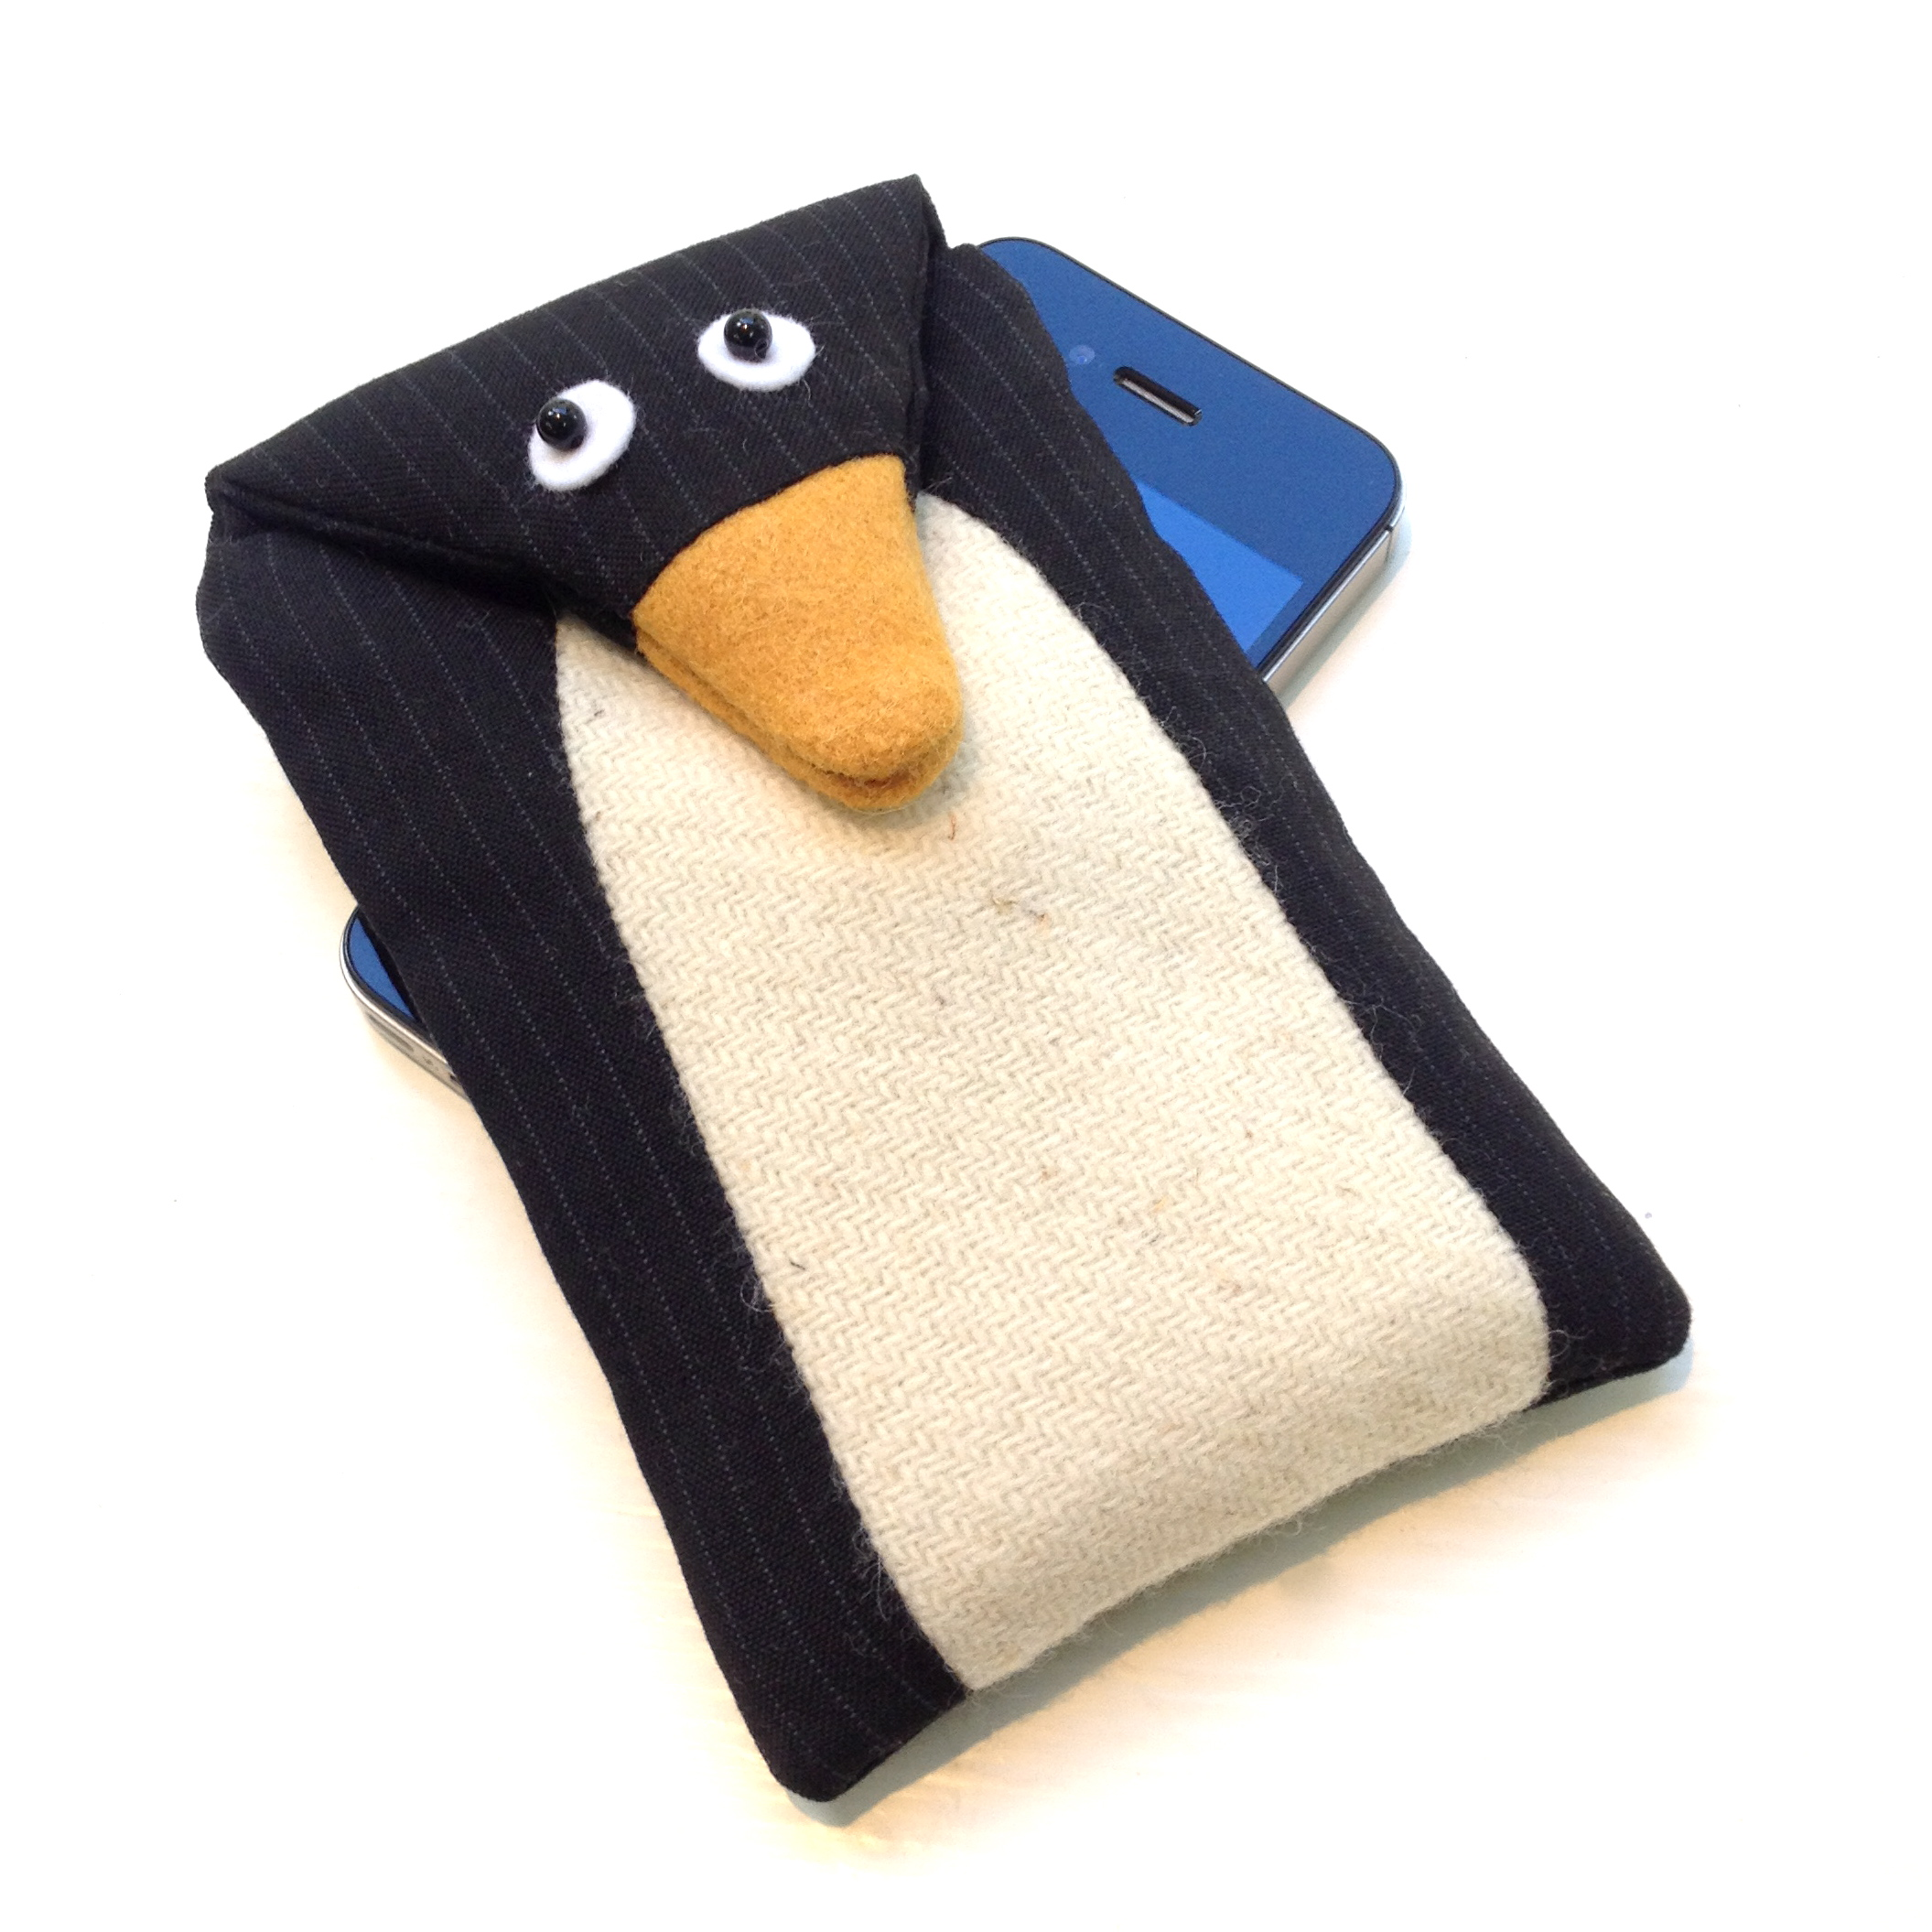 Pedro the penguin phone cover.